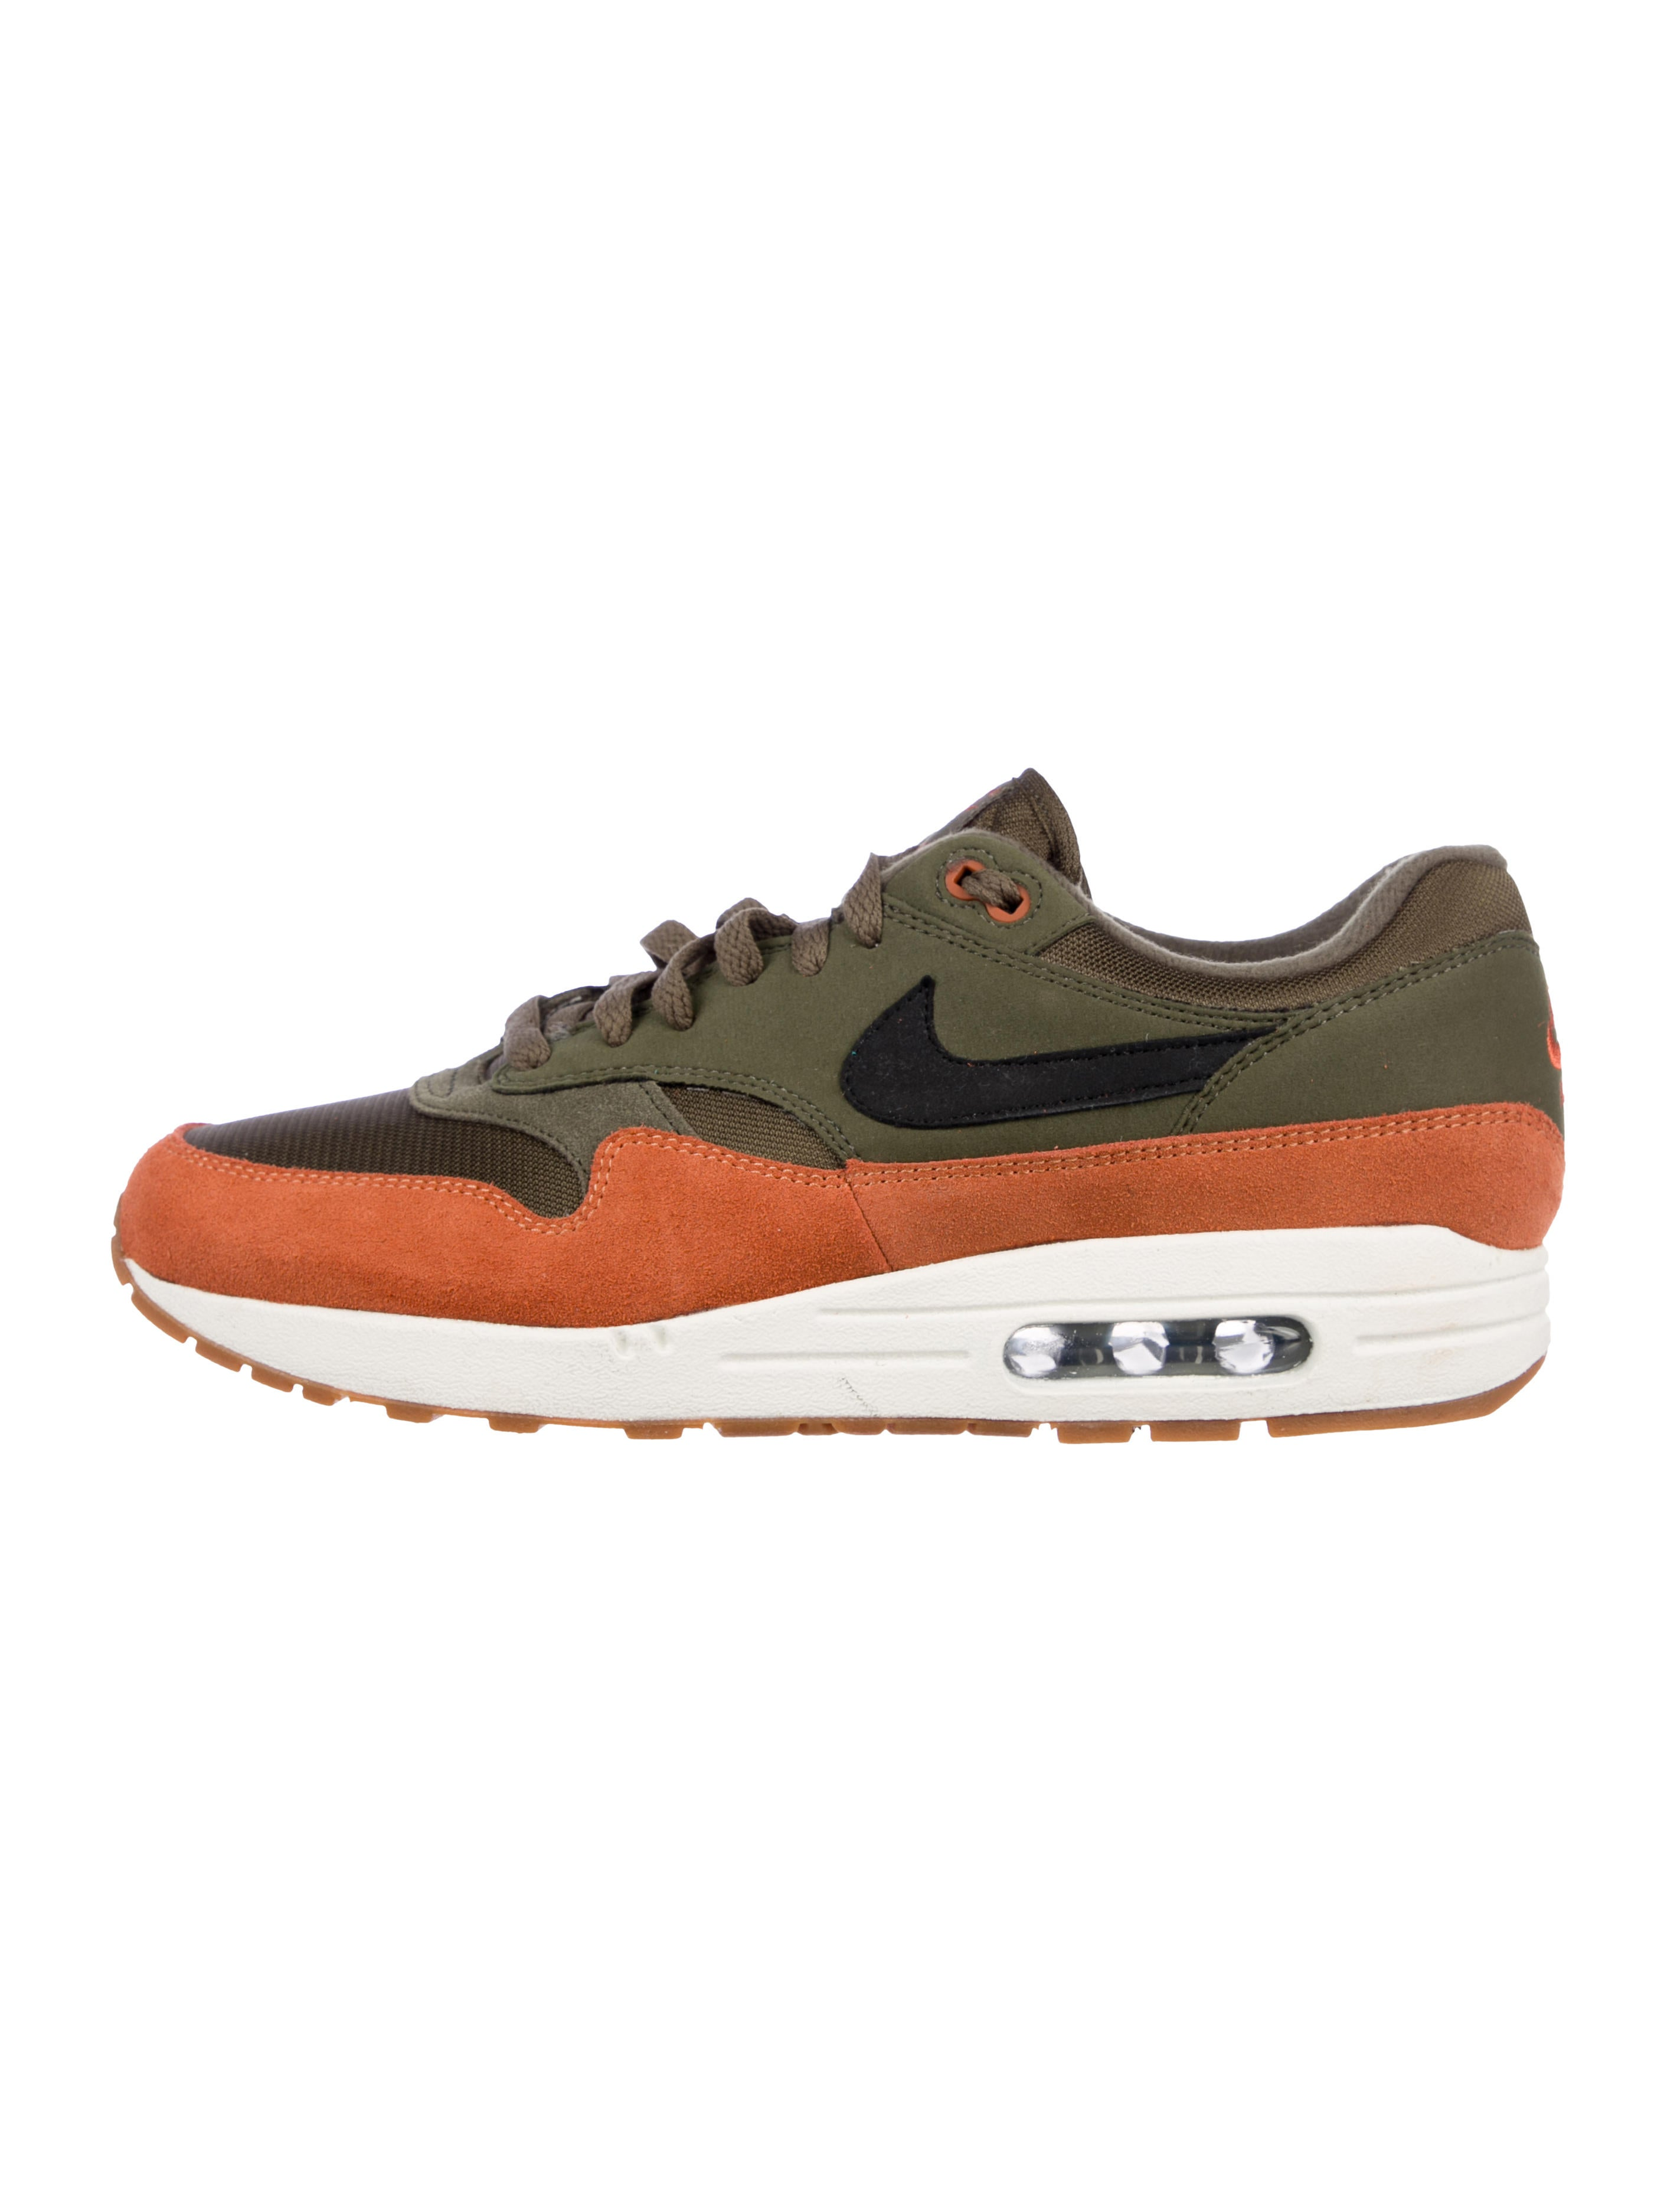 Nike Air Max 1 Olive Canvas Sneakers Shoes WU235379